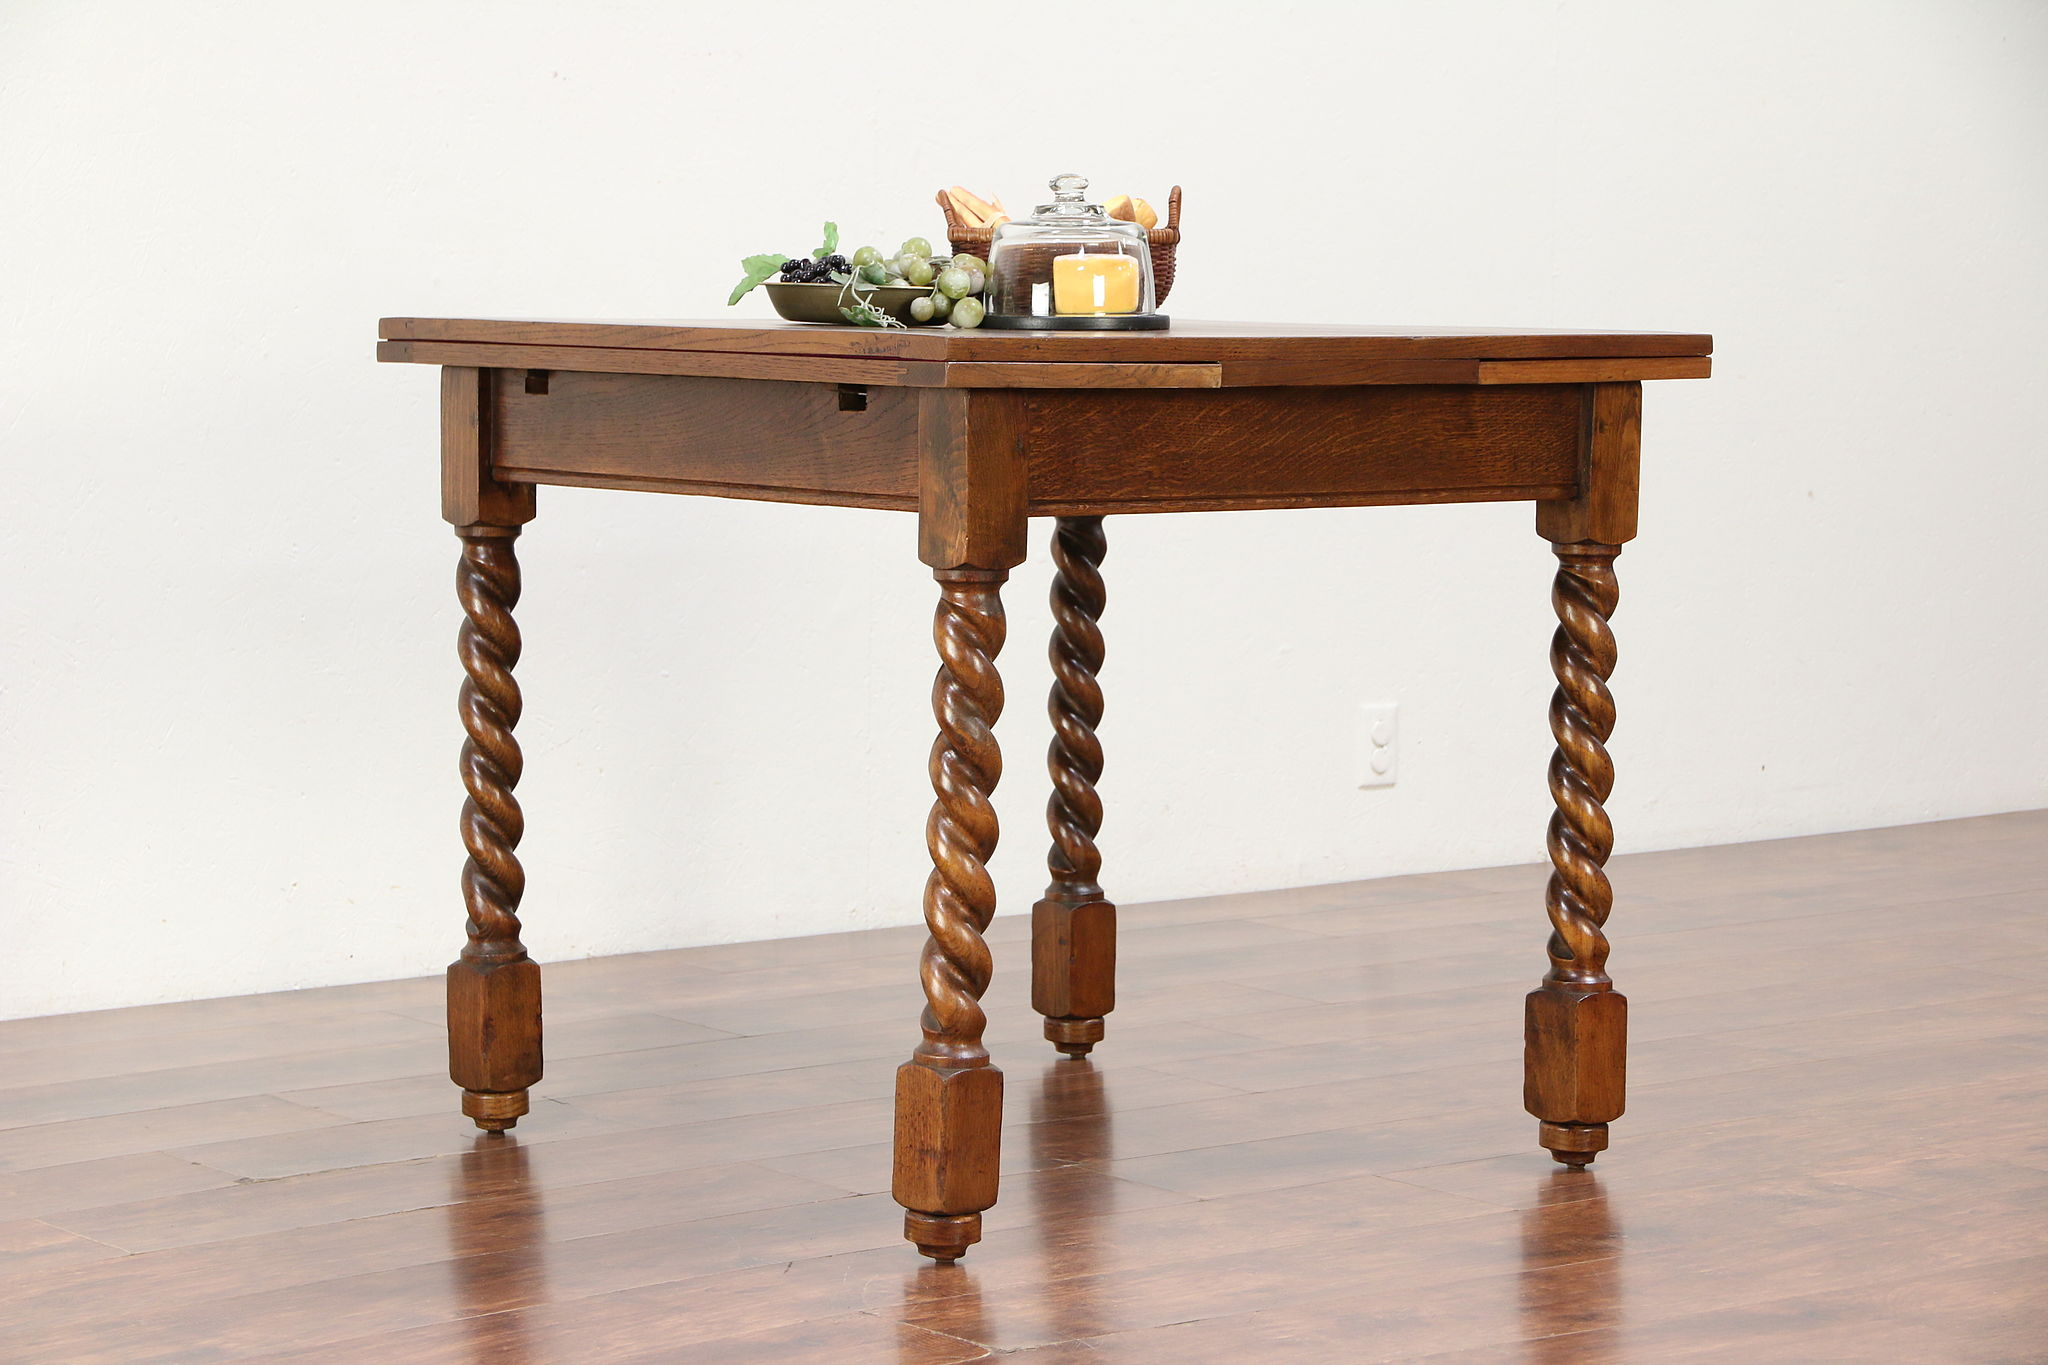 Oak Antique Kitchen, Dining or Game Table, Draw Leaves, Spiral Legs #30001